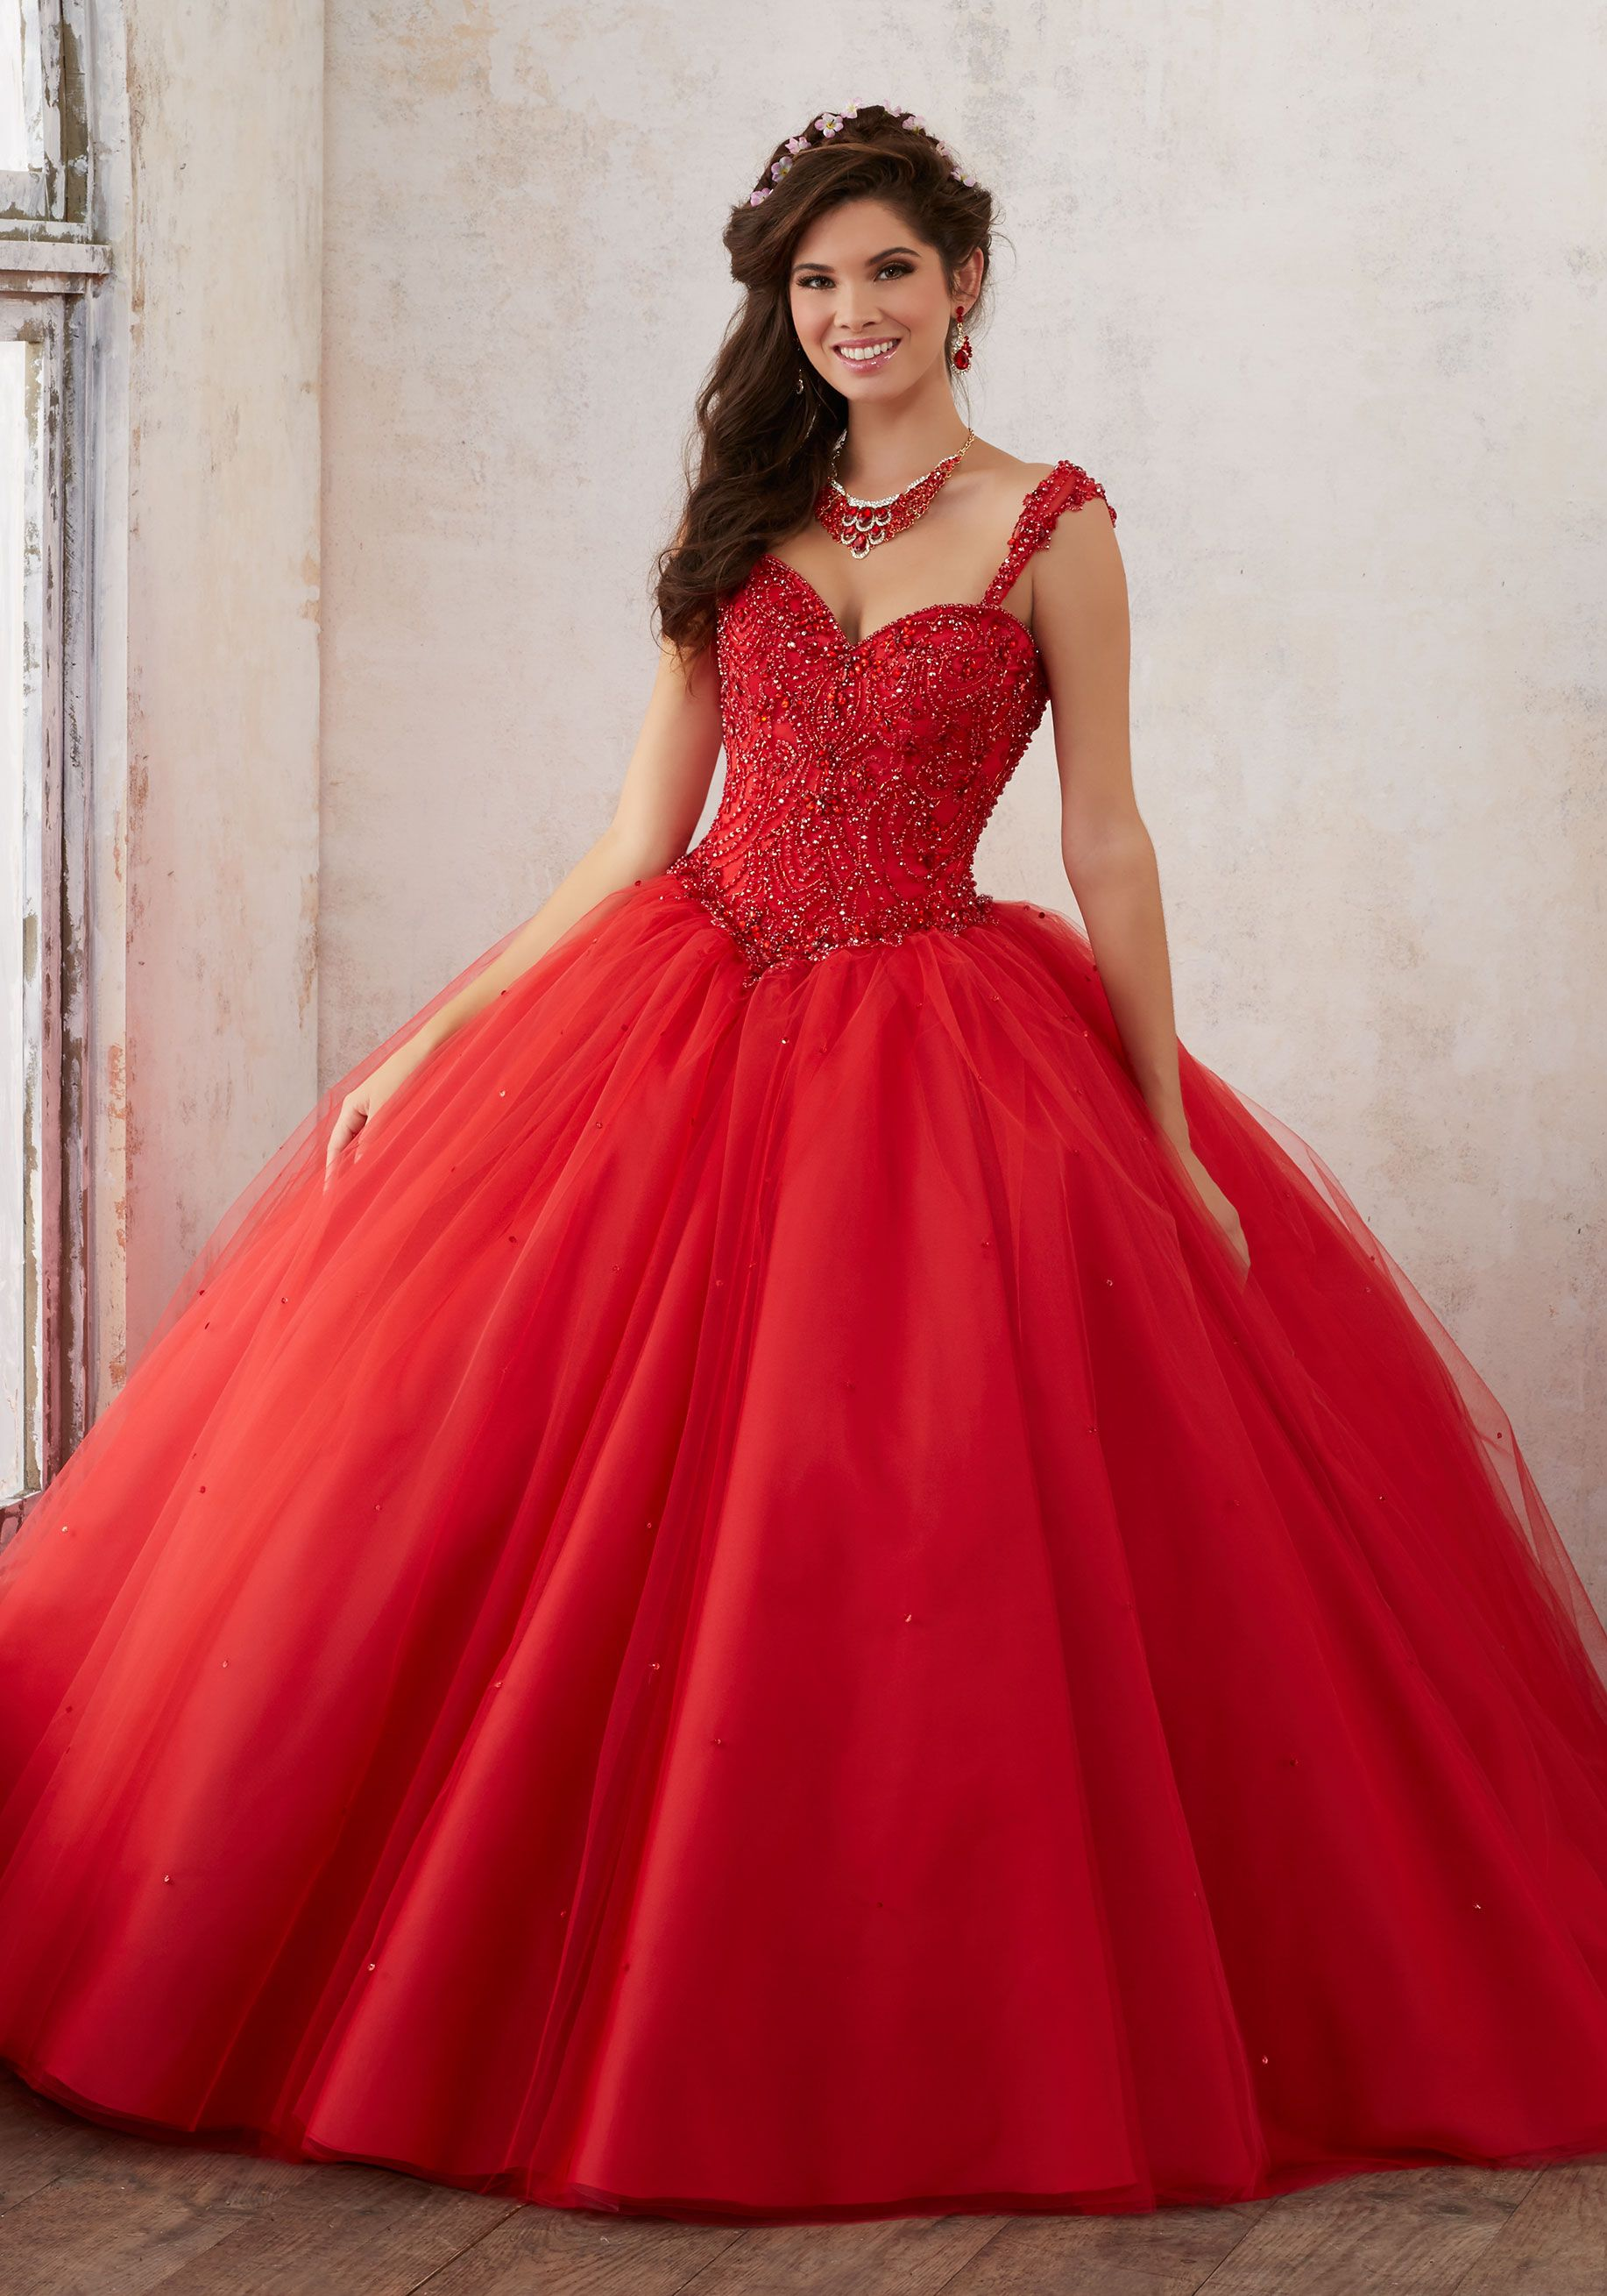 Jeweled beading on a tulle quinceañera ball gown valencia style